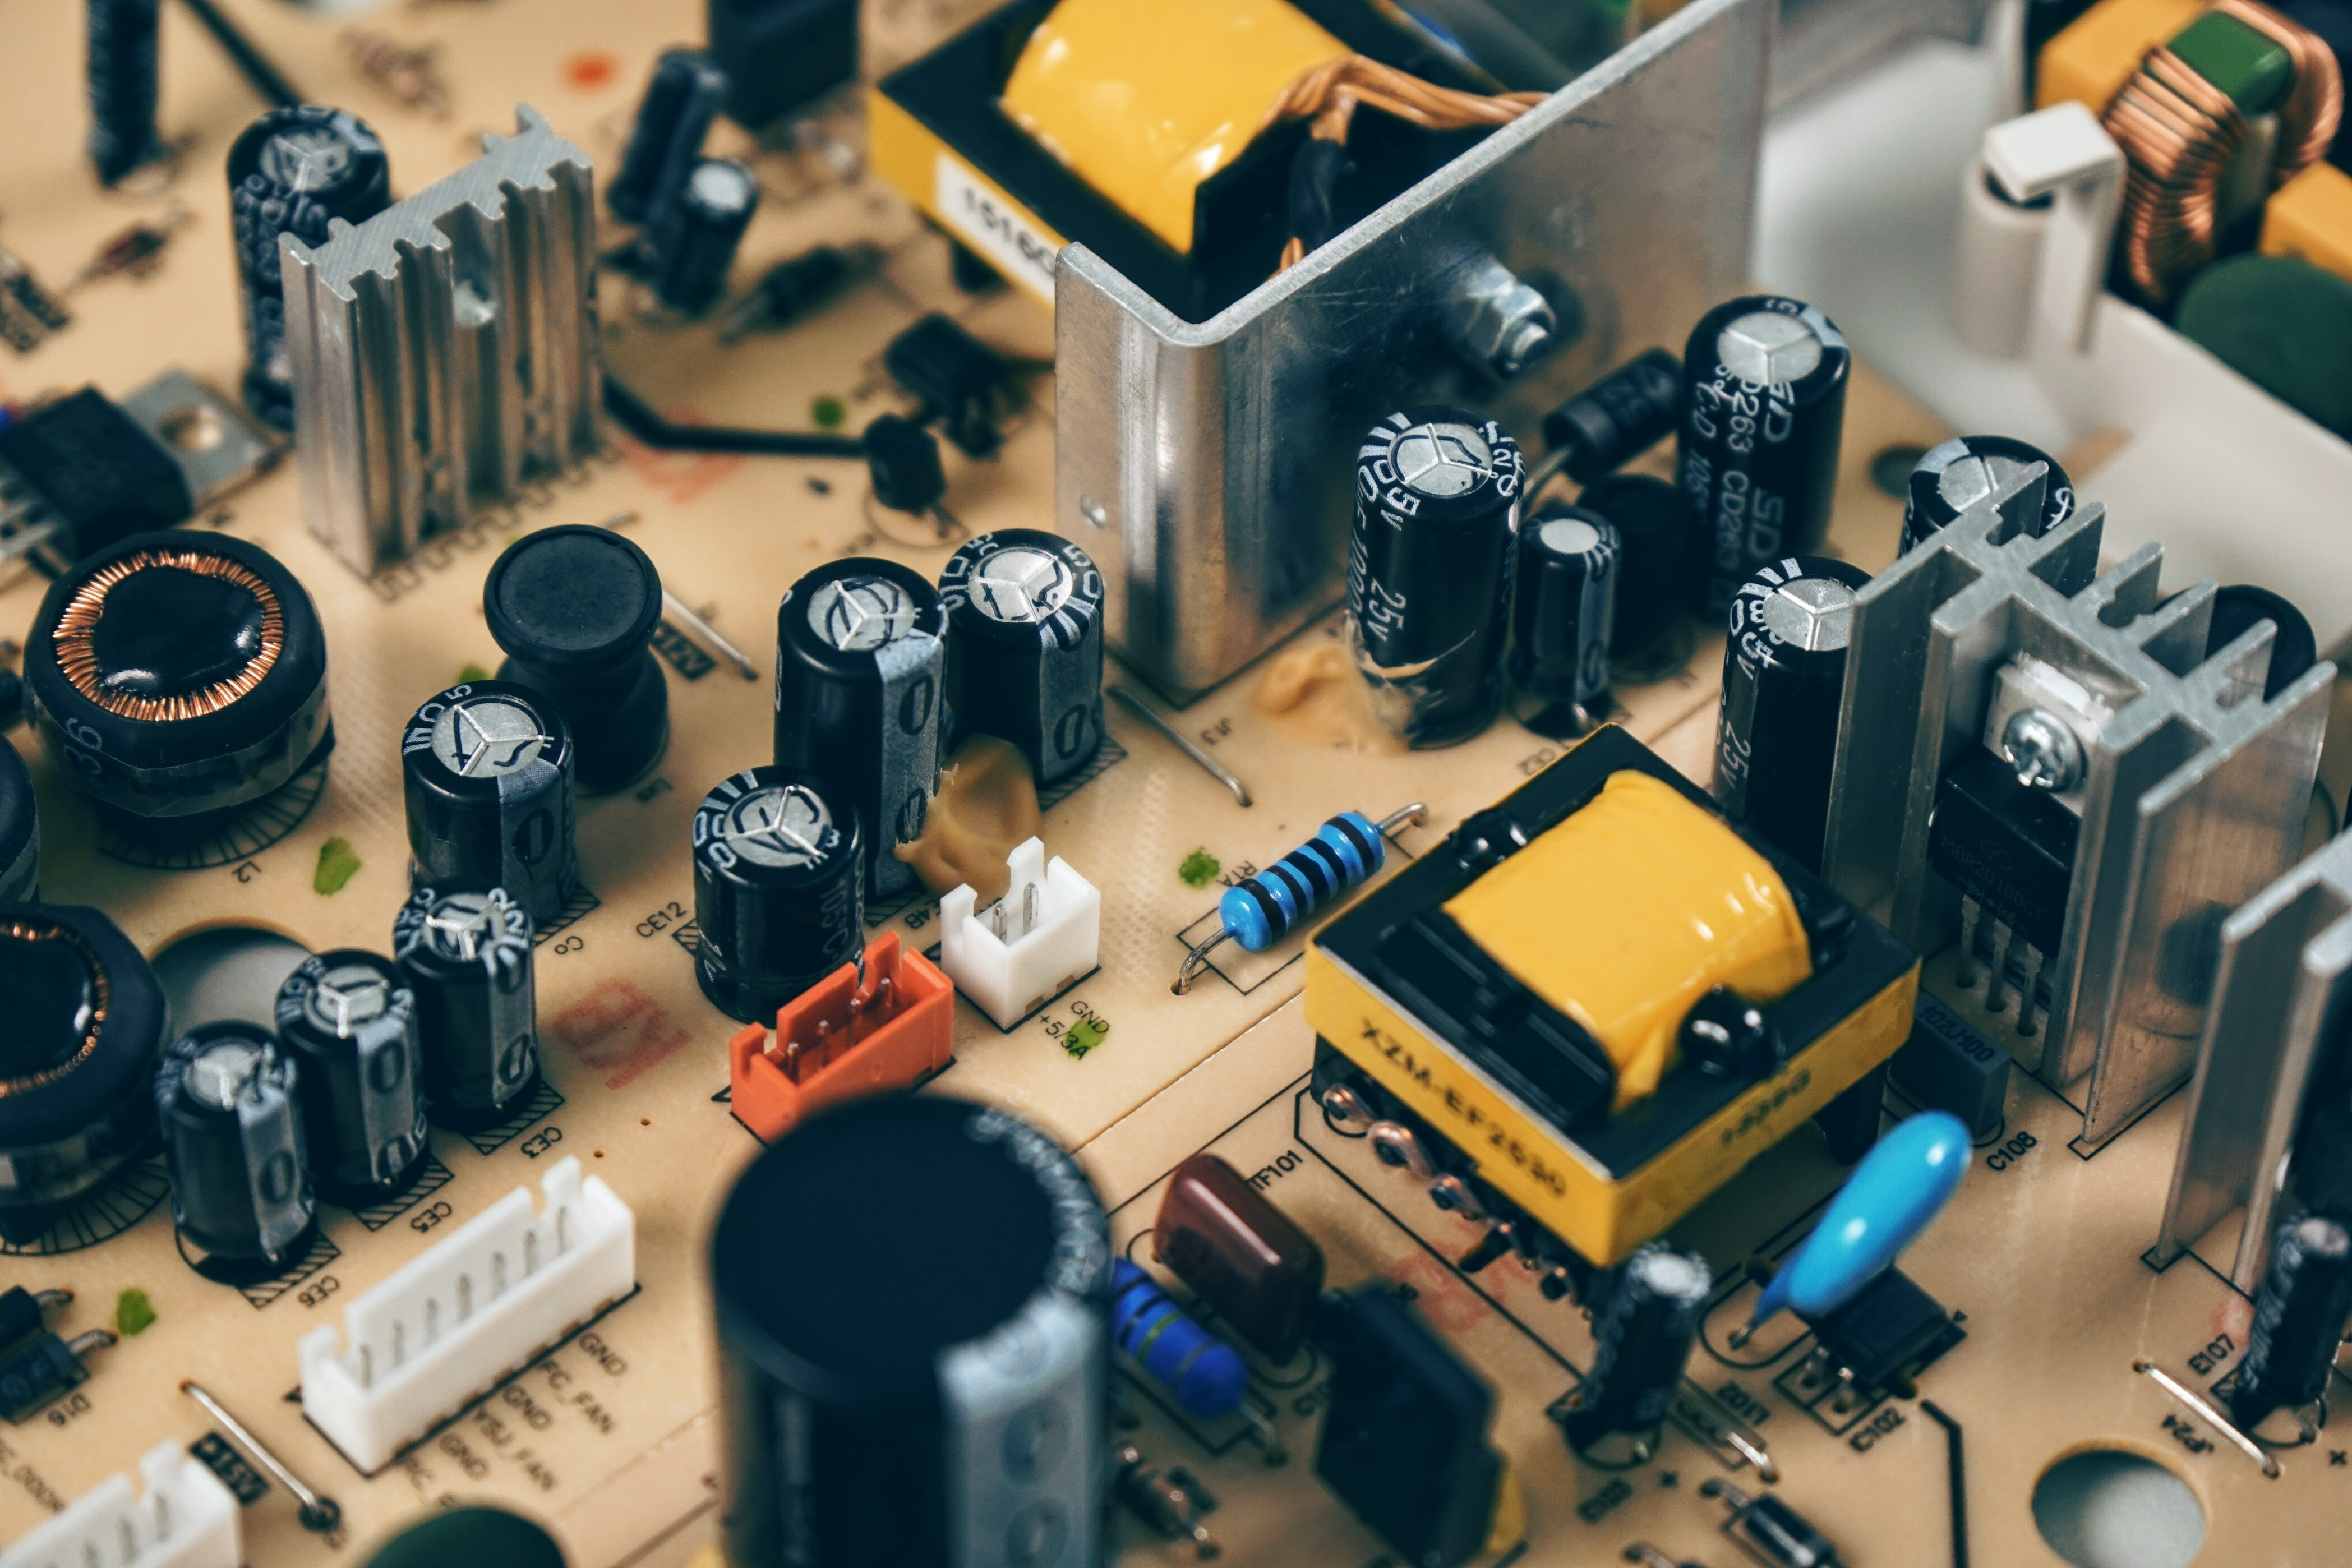 Check These 7 Points for Selecting a PCB Manufacturer